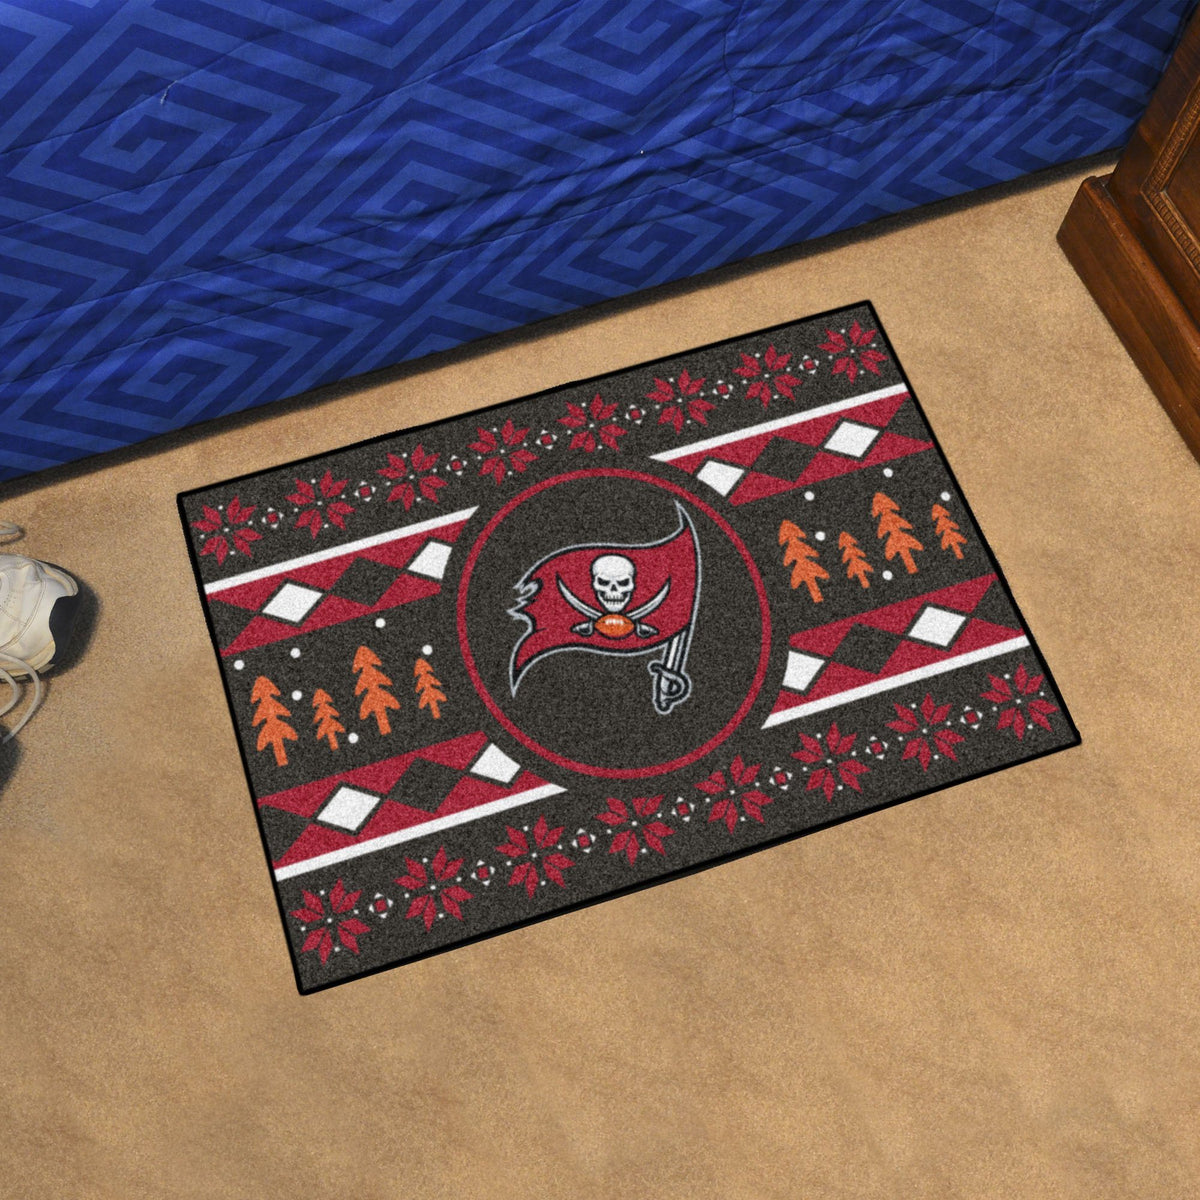 "NFL - Holiday Sweater Starter Mat, 19"" x 30"" NFL Mats, Rectangular Mats, Holiday Sweater Starter Mat, NFL, Home Fan Mats Tampa Bay Buccaneers"